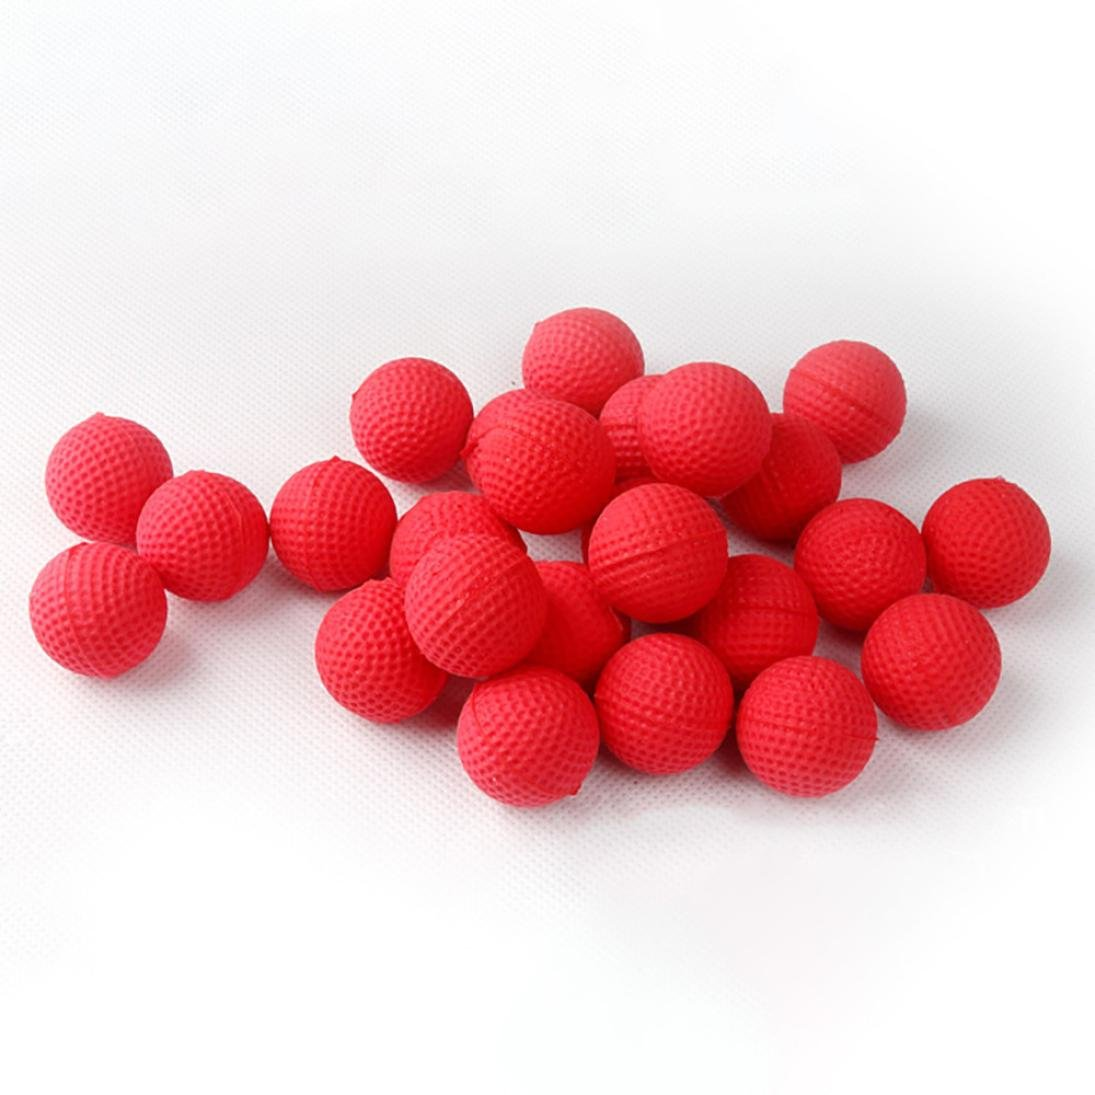 Iuhan New Bullet Balls Rounds Compatible For Nerf Rival Apollo Child Toy (100Pcs, Red)